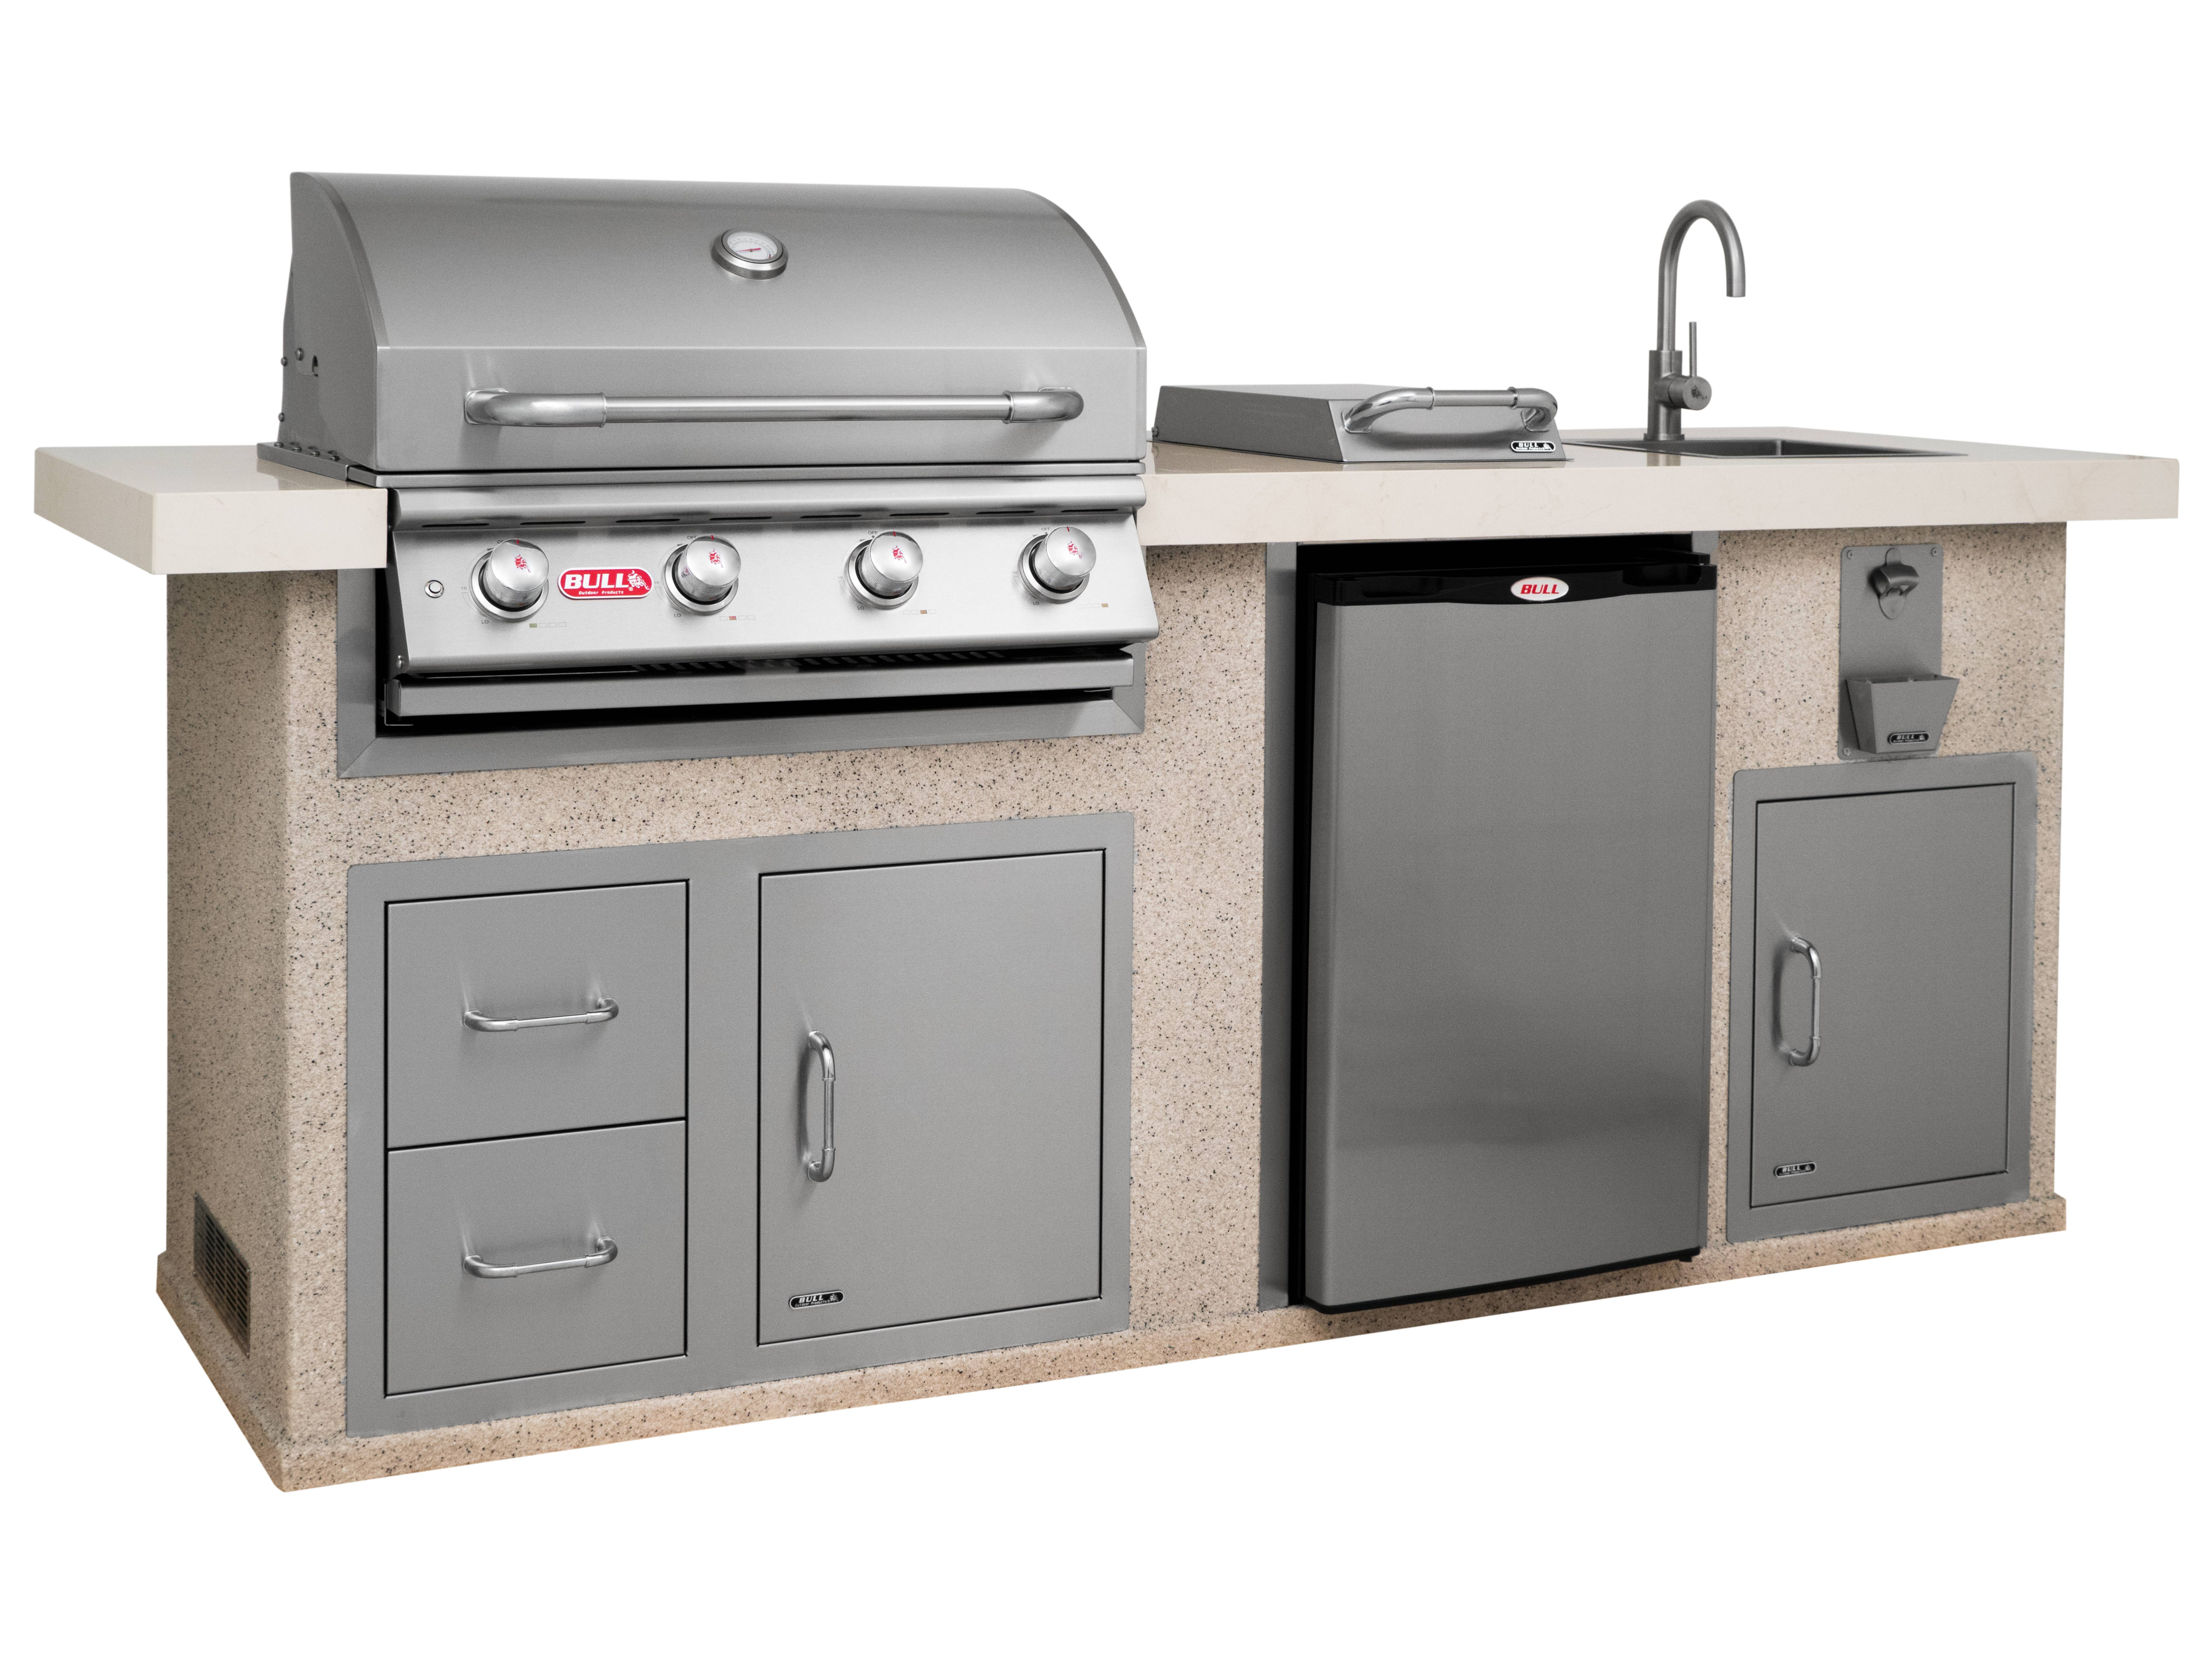 Bull Outdoor Kitchen Island , Outdoor Kitchens,  europe, Bull europe limited, bull bbq europe